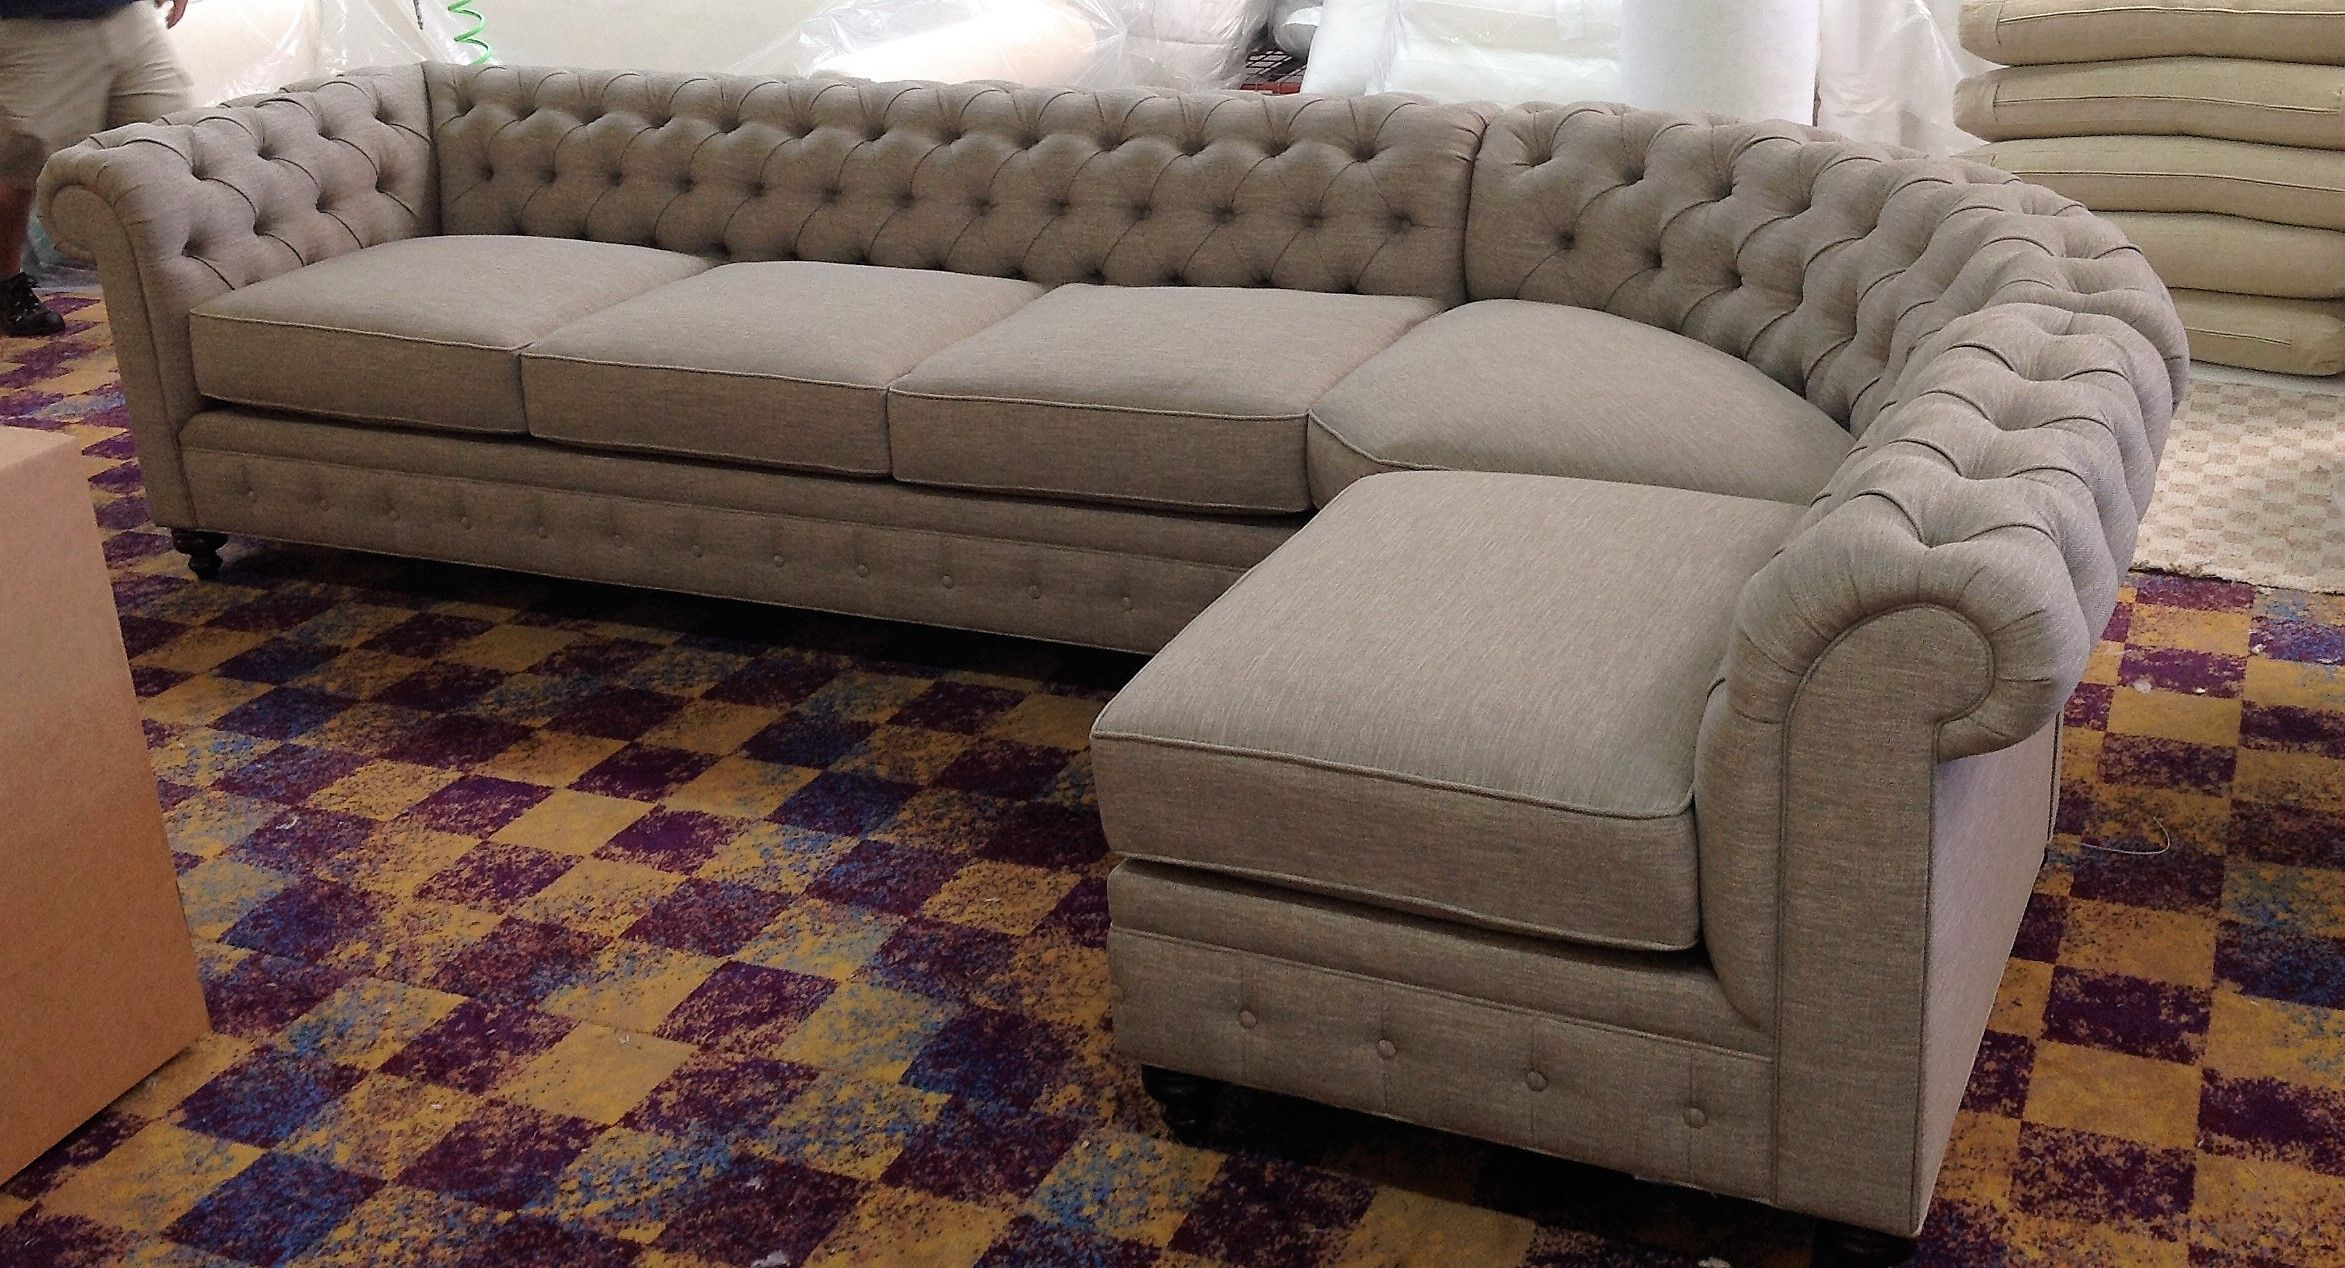 Have A Luxury Living Room With The Elegant Chesterfield Sofa